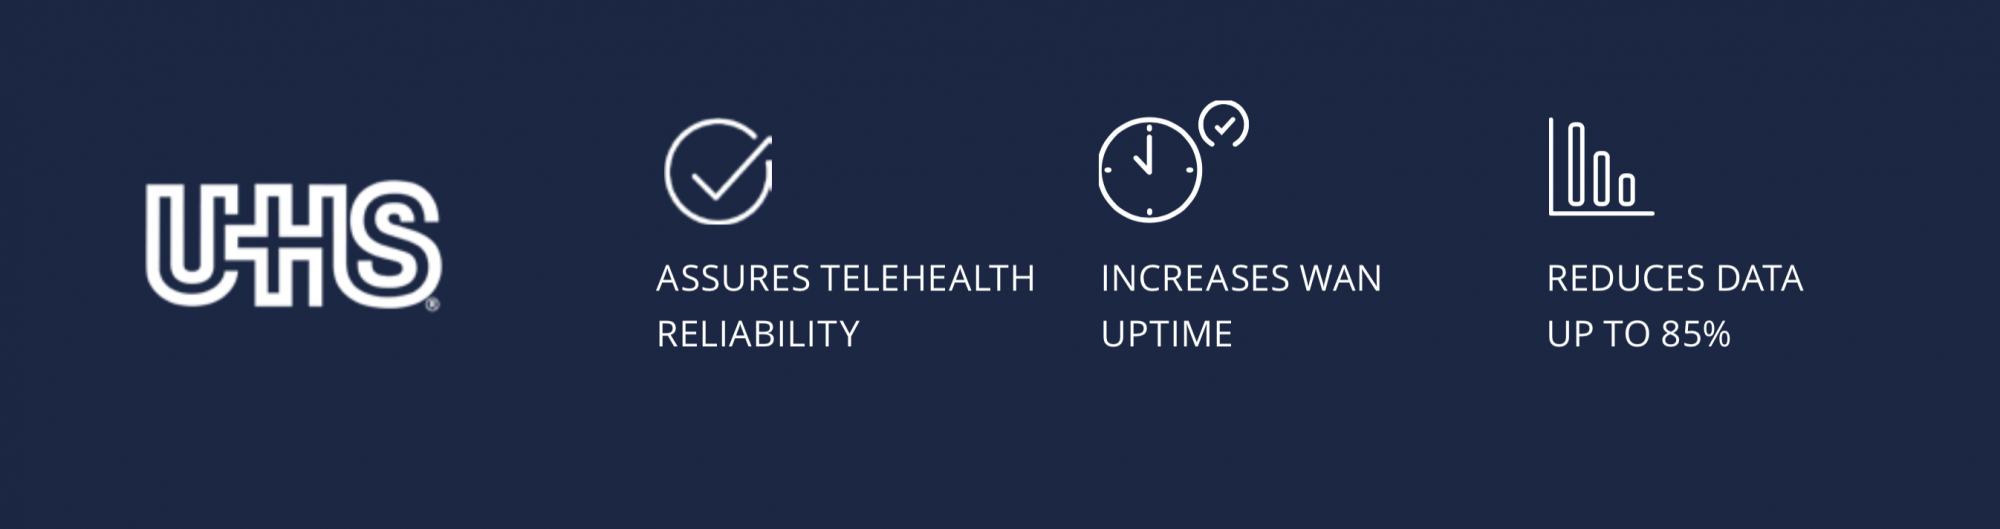 Universal Health Services transforms its WAN with Unity EdgeConnect SD-WAN edge platform, achieving new levels of network performance, reliability, and agility